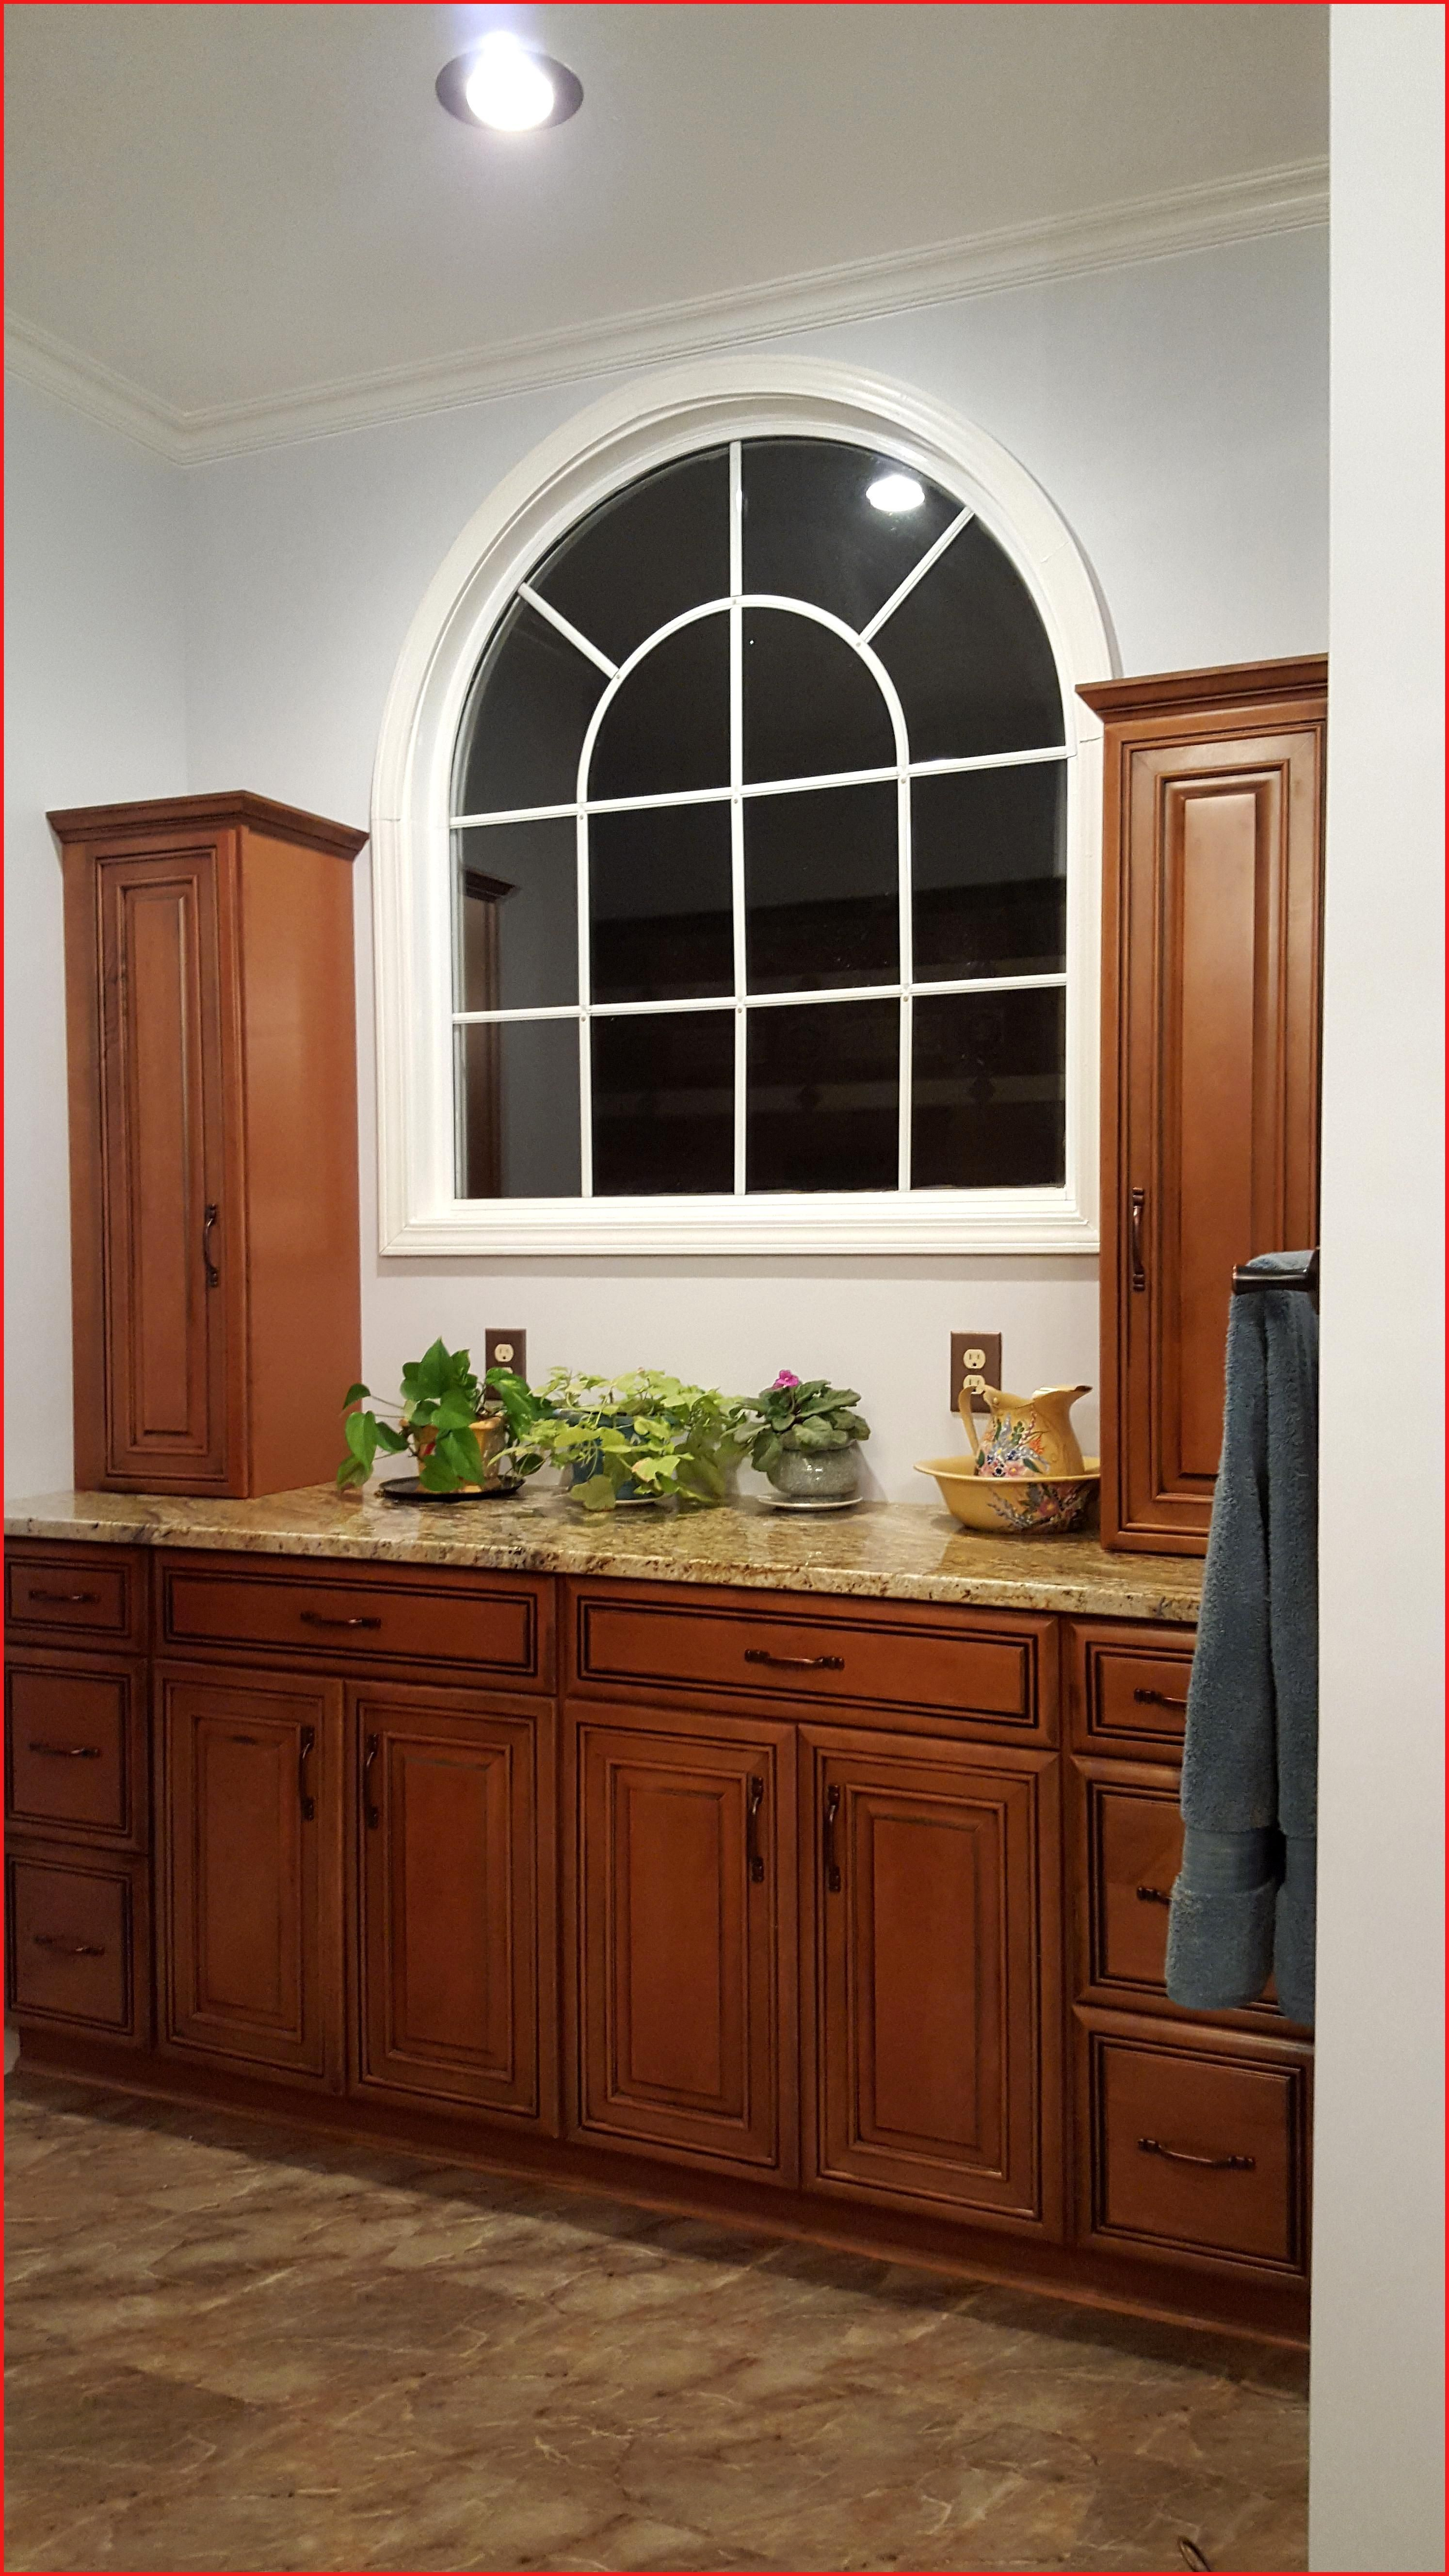 Diamond Whiskey Black Maple cabinets Lowe s Yellow River ... on Maple Cabinets Black Countertops  id=17107